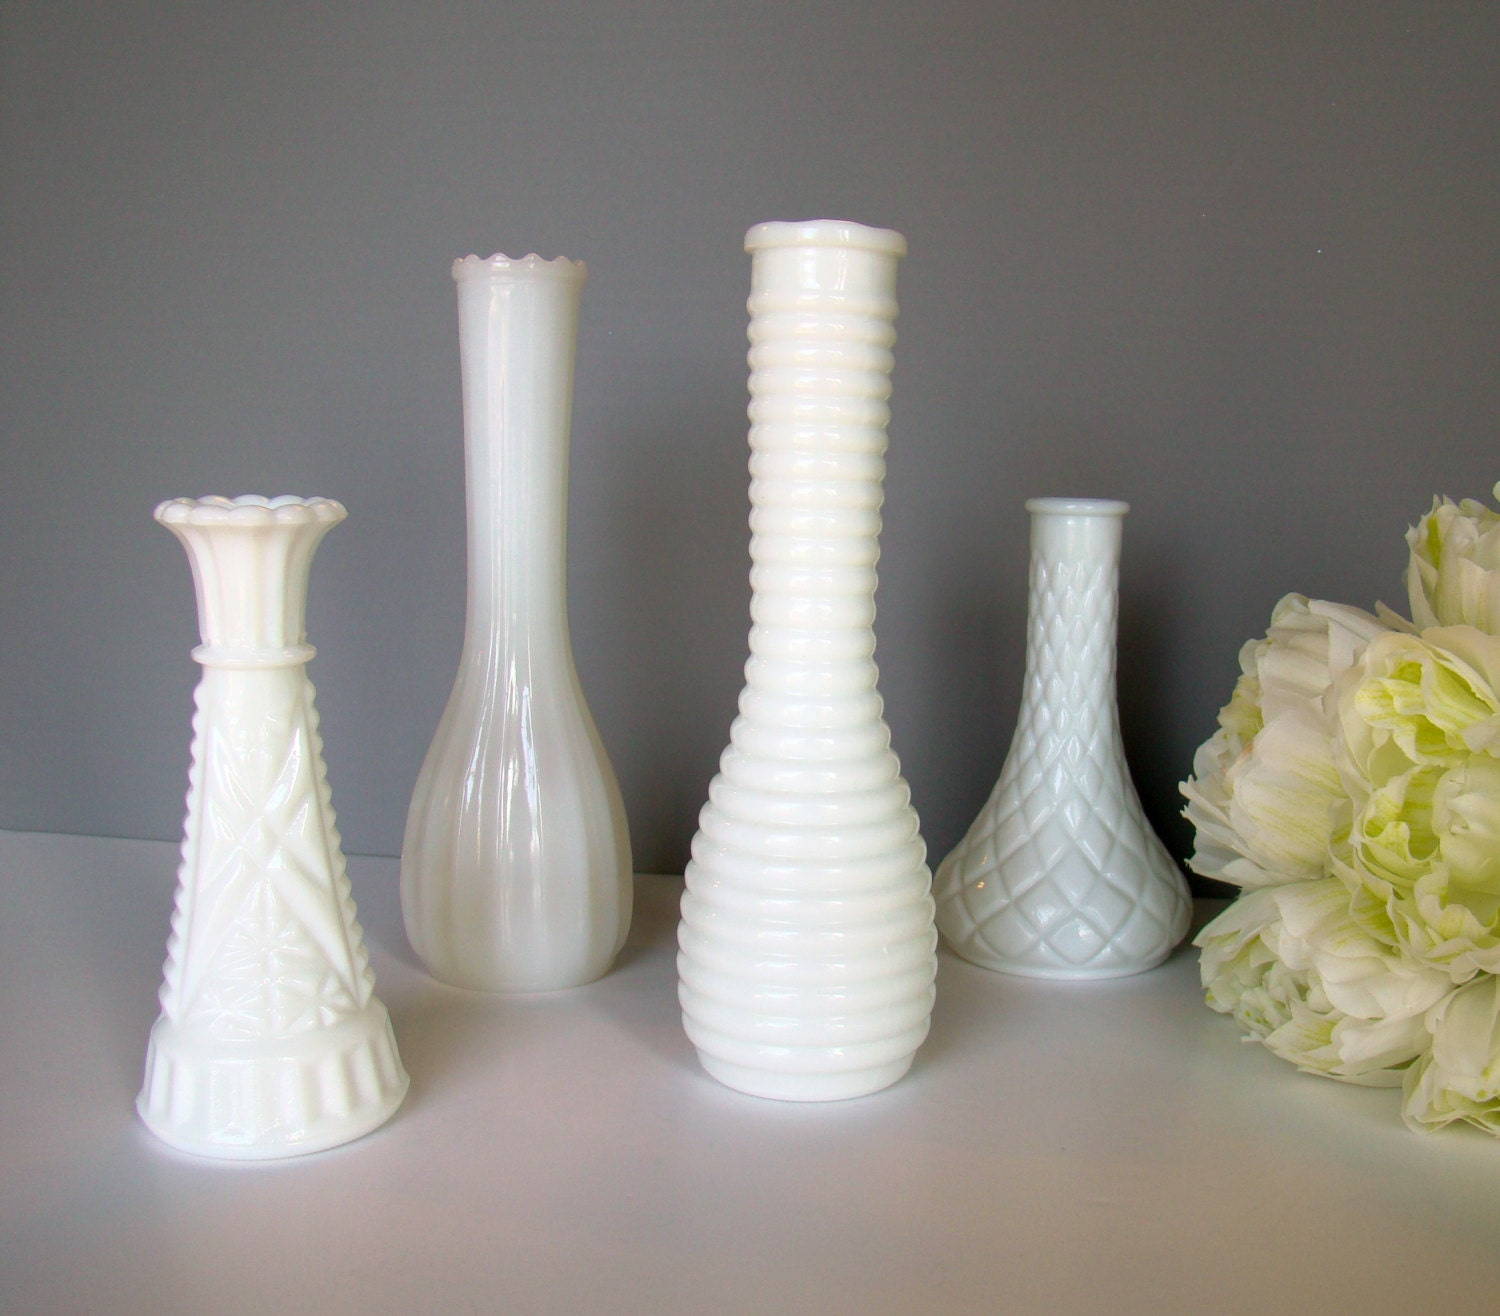 Milk glass wedding vases wedding decor table by twiningvines - Glass vases for wedding table decorations ...